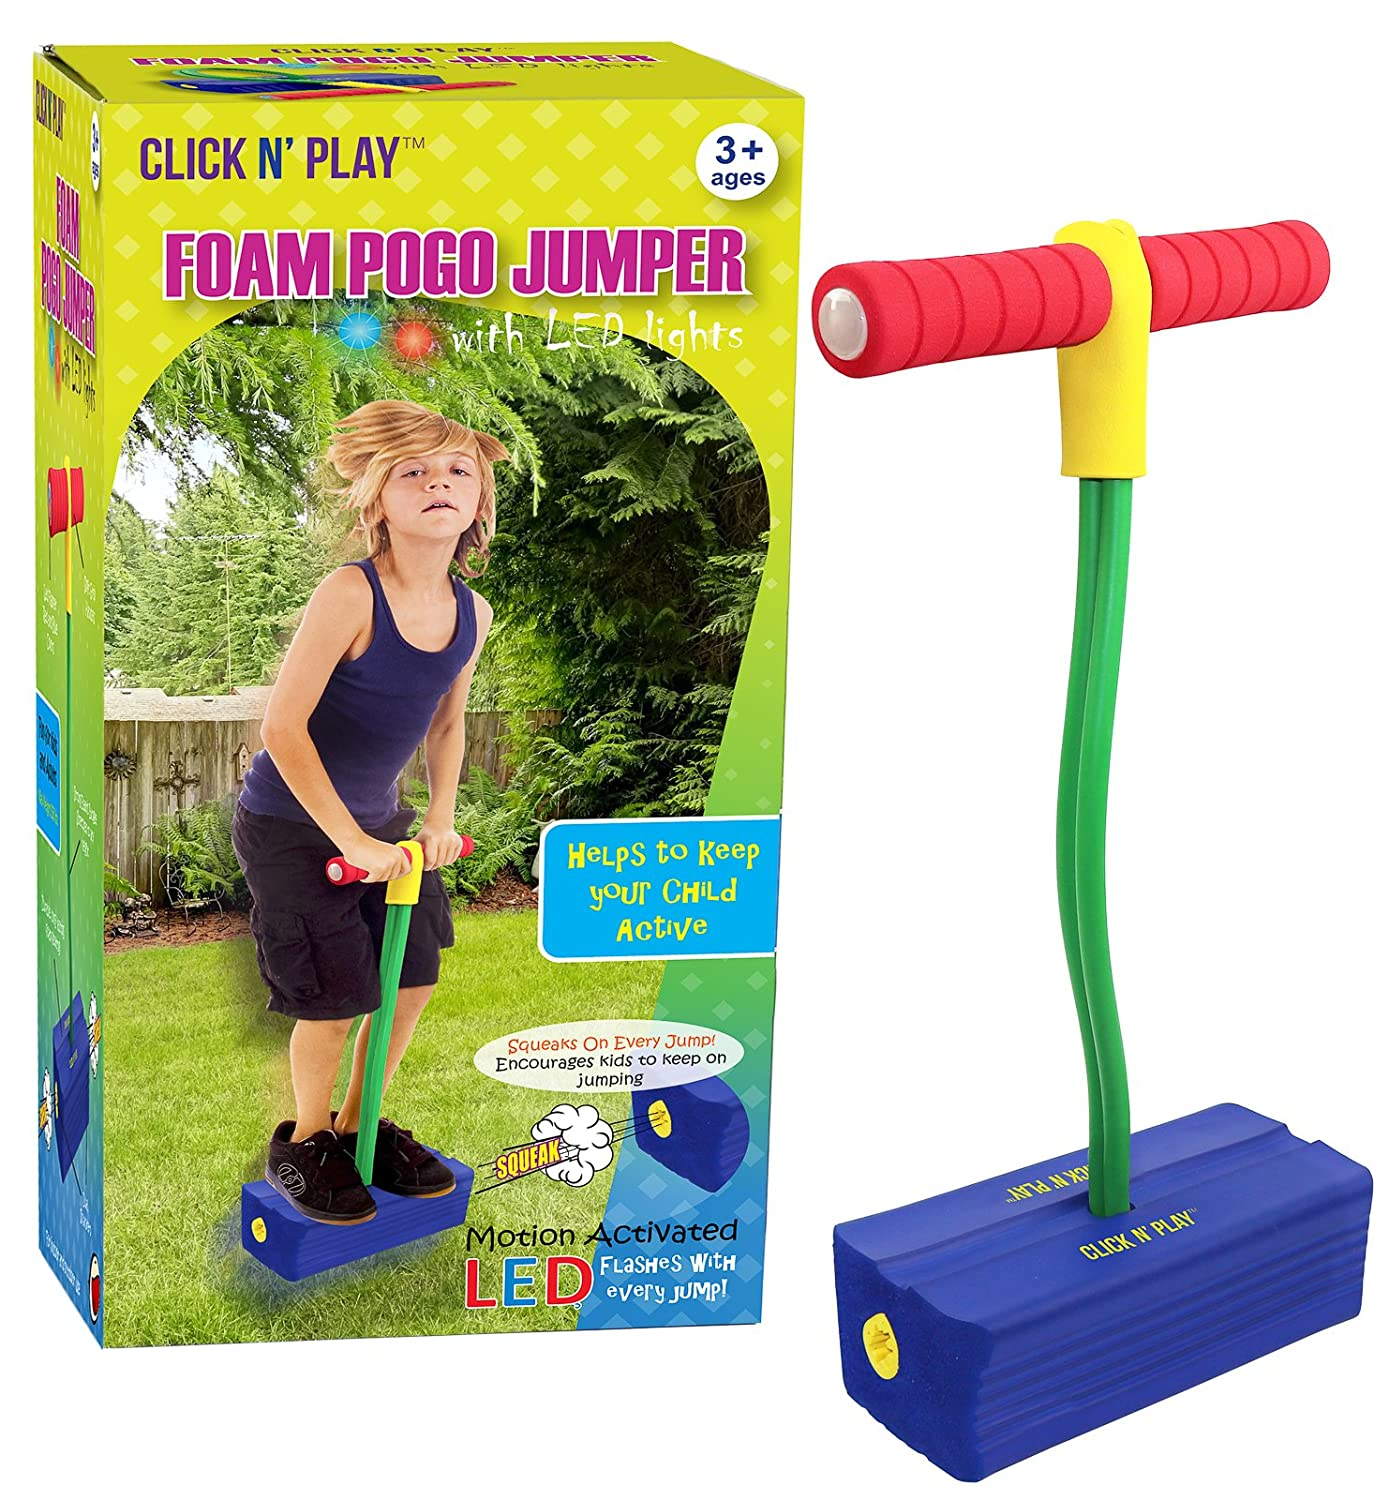 Click n' Play Foam Pogo Jumper - Makes Squeaky Sounds with Flashes LED Lights Click n' Play CNP0309